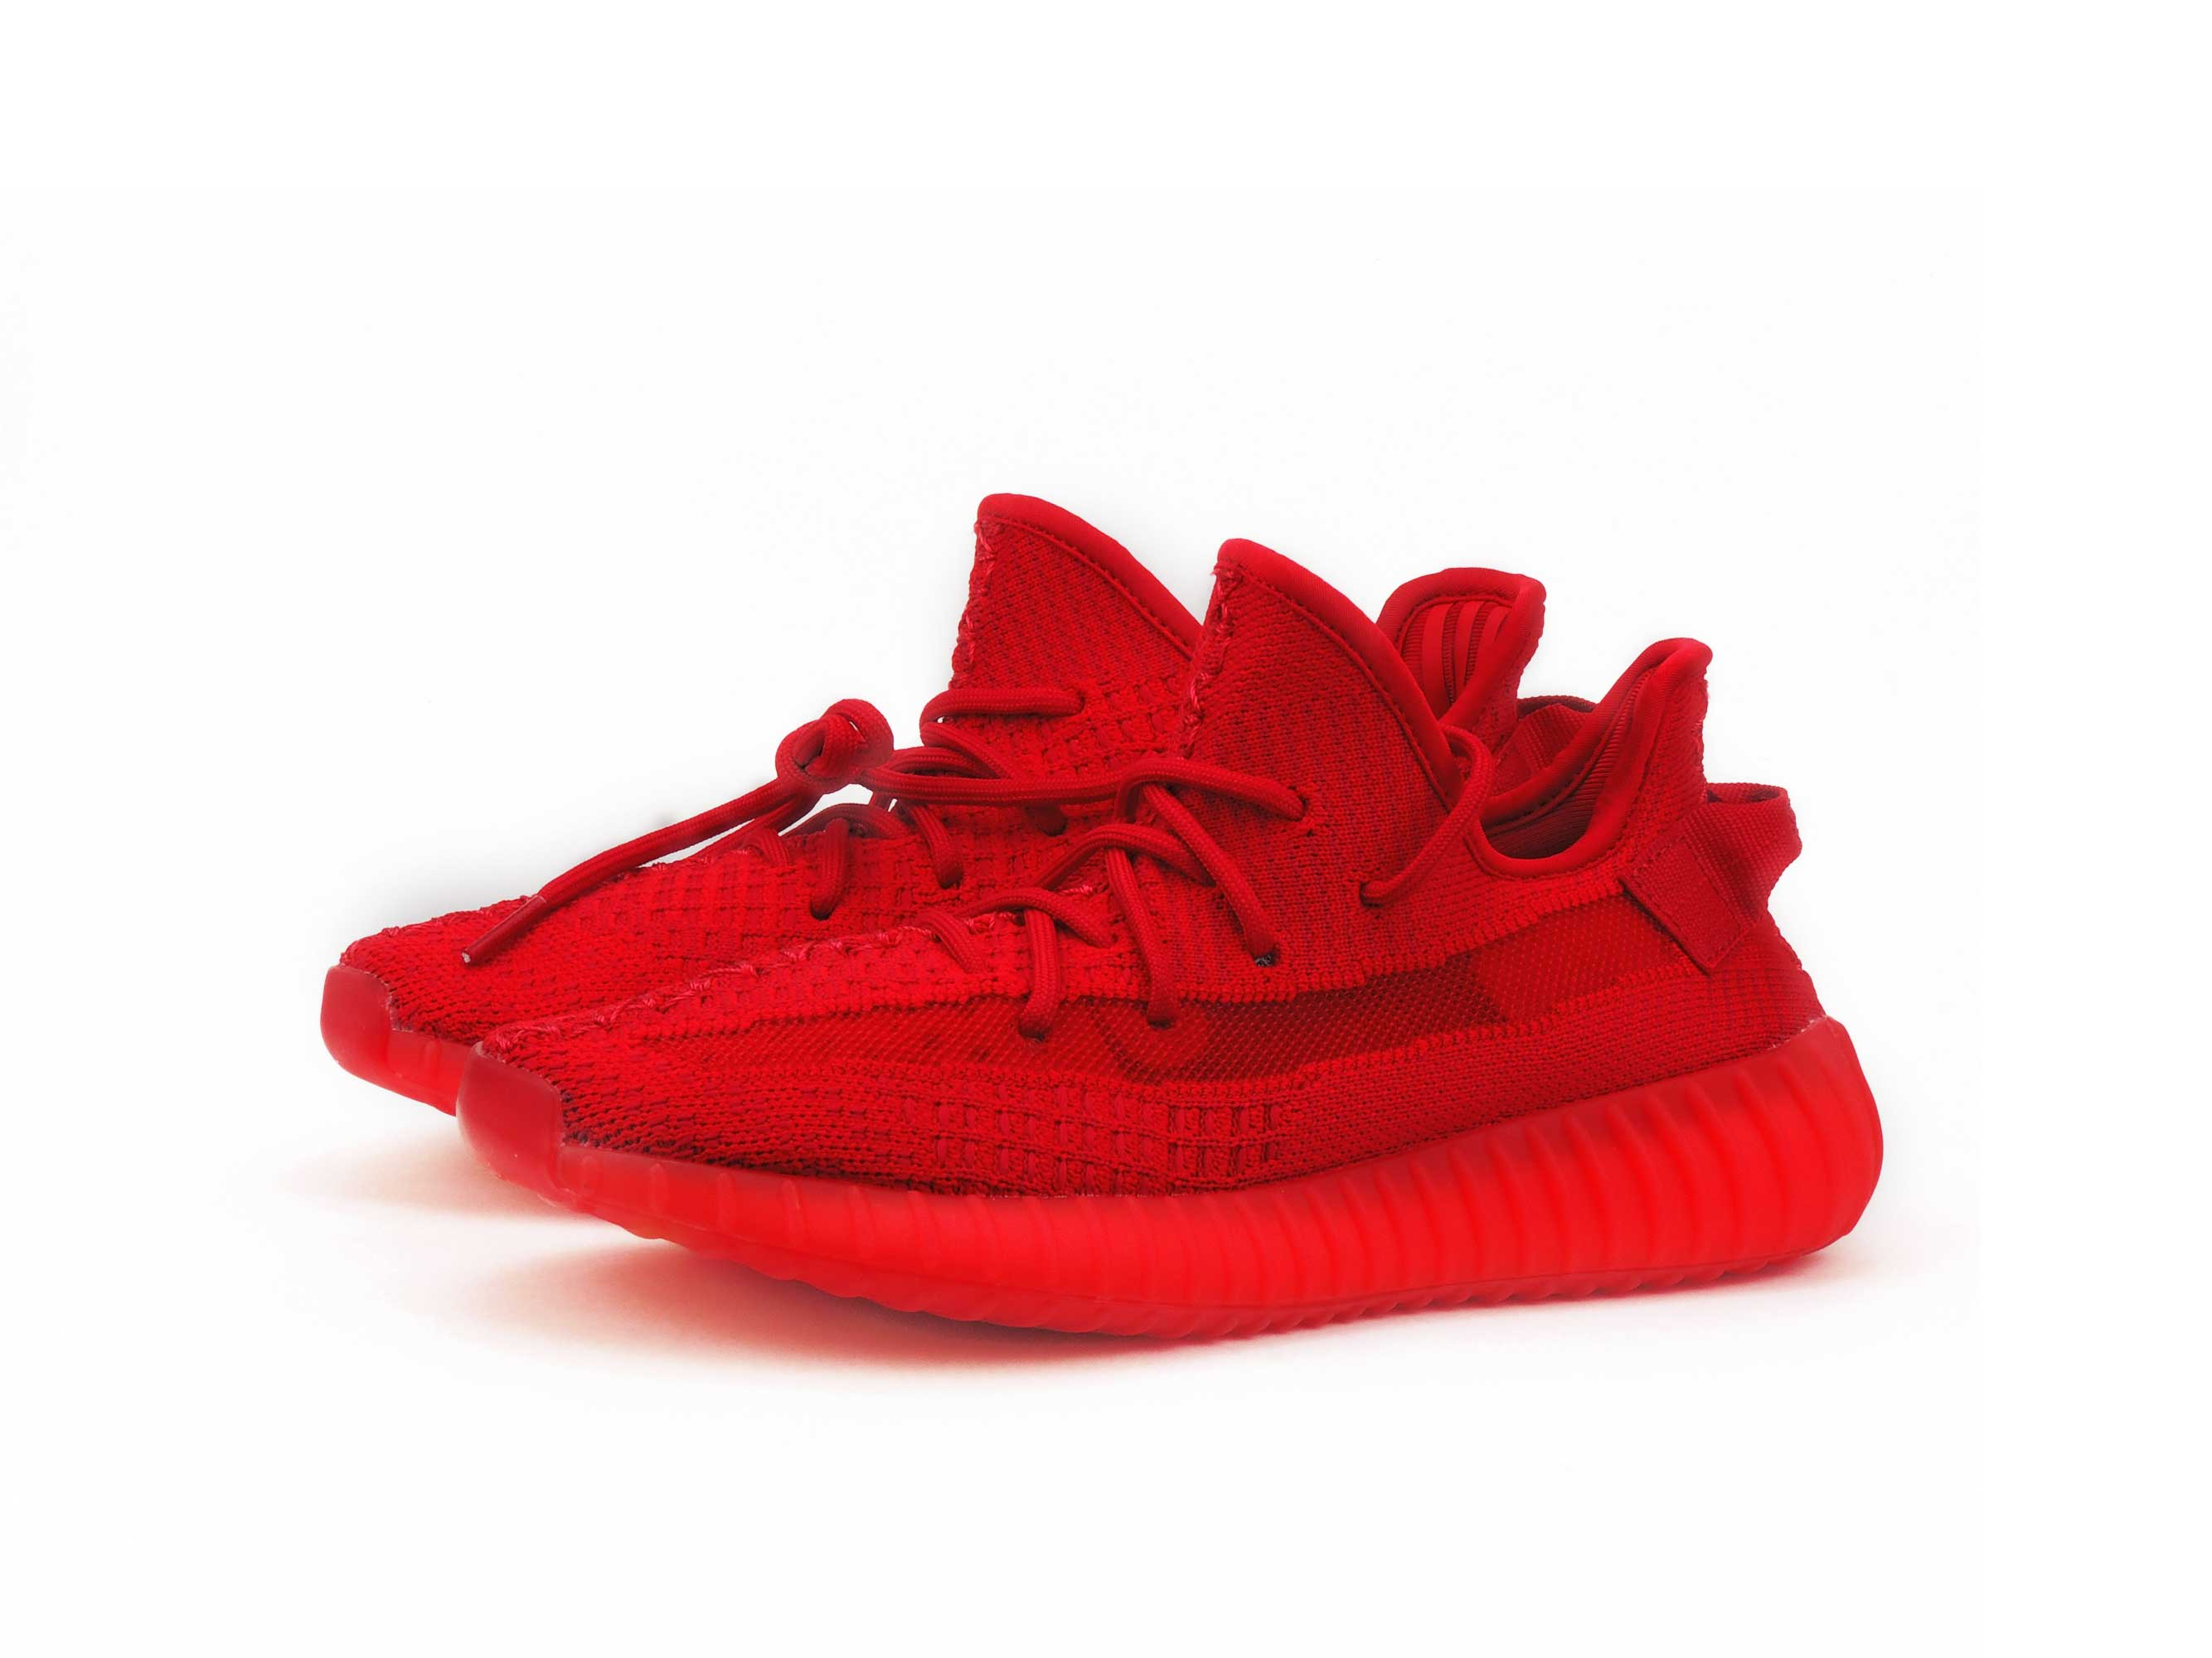 pretty nice 2dc79 cde34 adidas yeezy boost 350 v2 red